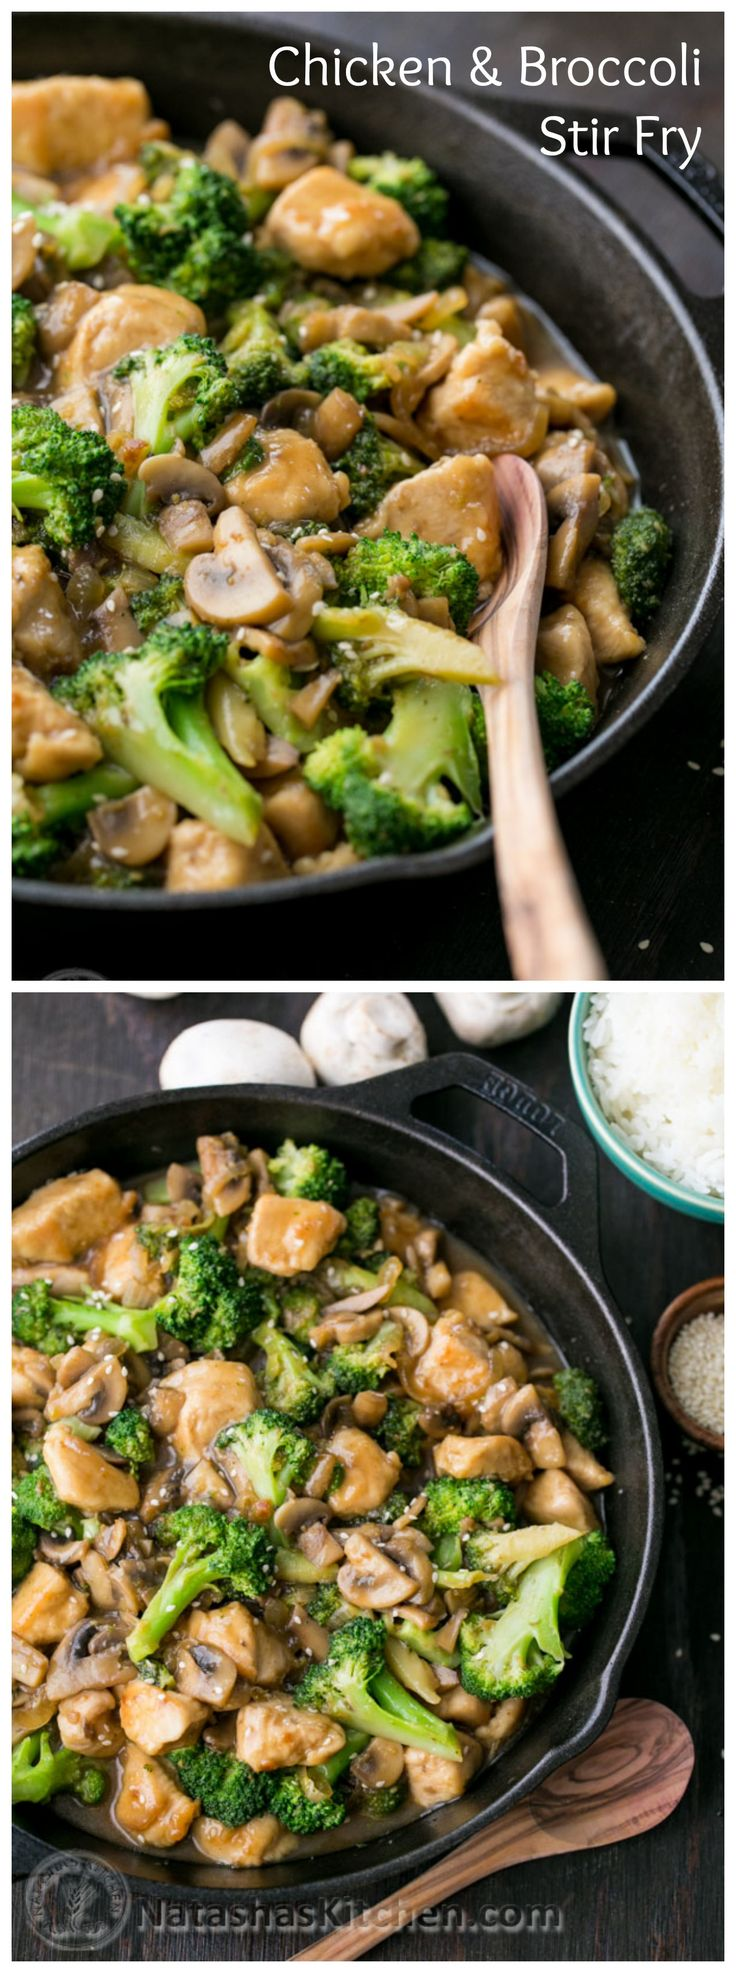 This chicken and broccoli stir fry is so tasty and much healthier than takeout…